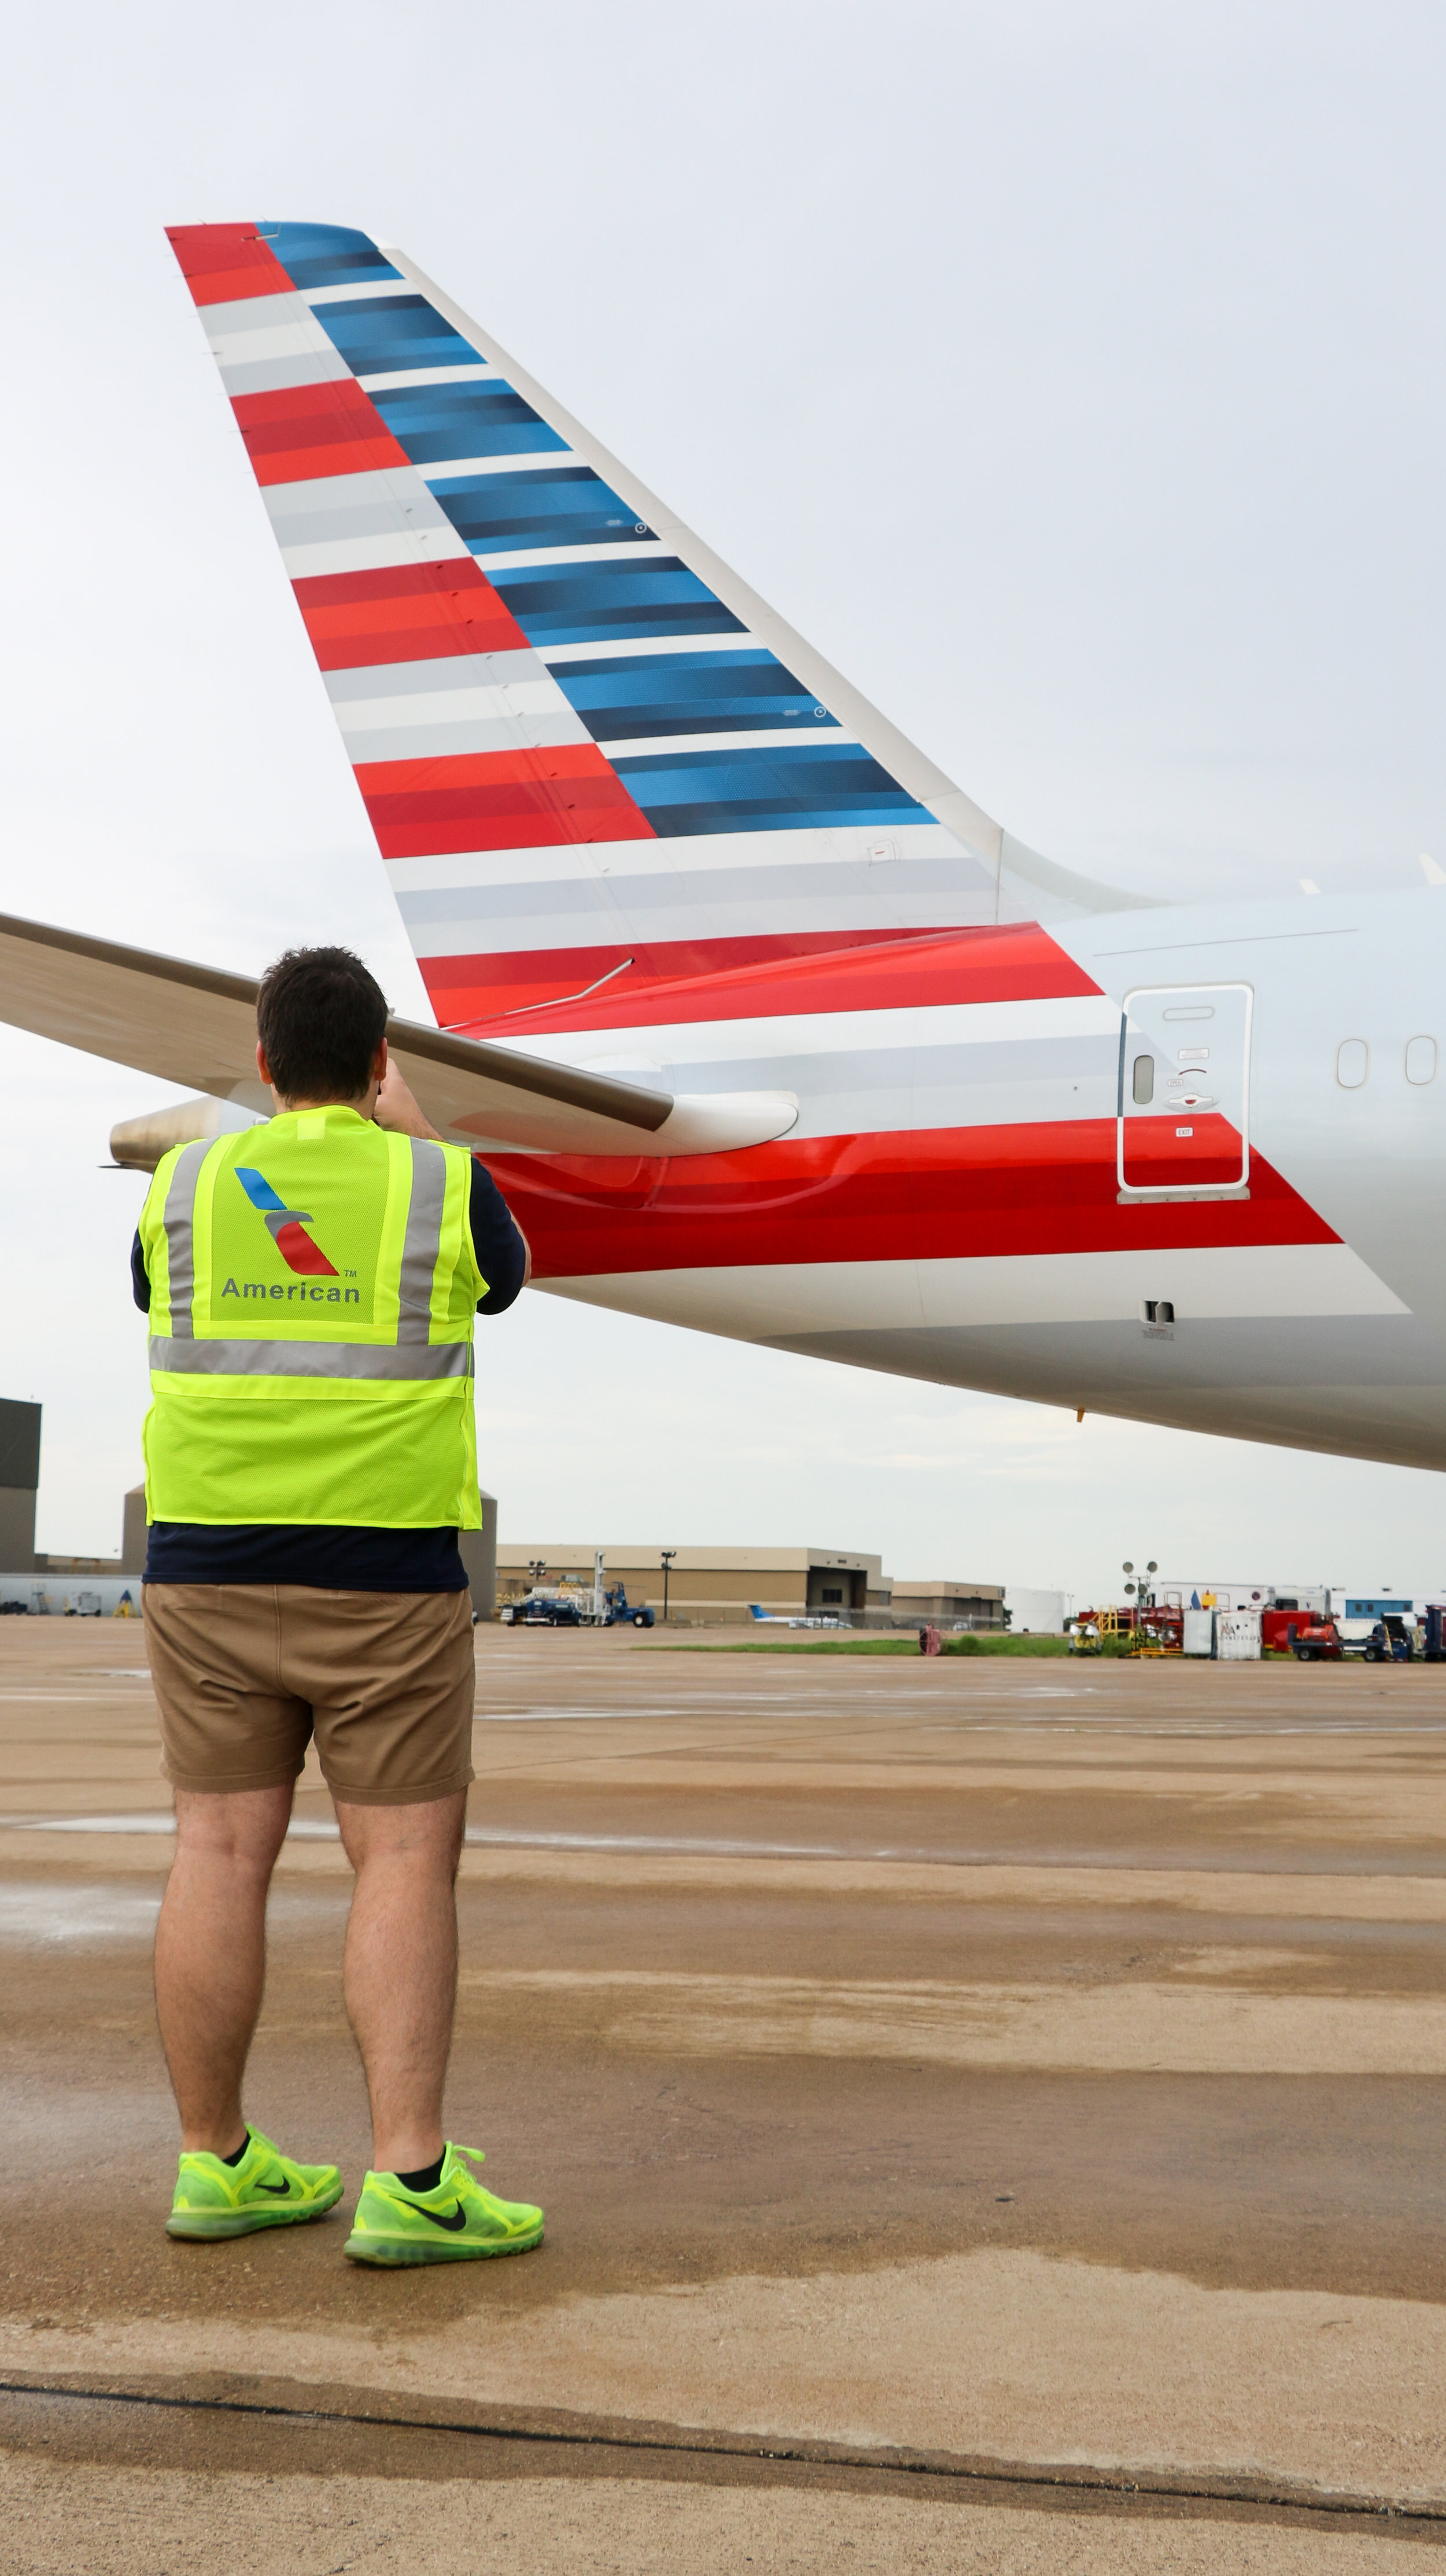 Decked out in a neon high-visibility vest, one of the attendees of the rainy tour snaps a picture of the tail of an American Airlines Boeing 787-9 Dreamliner.